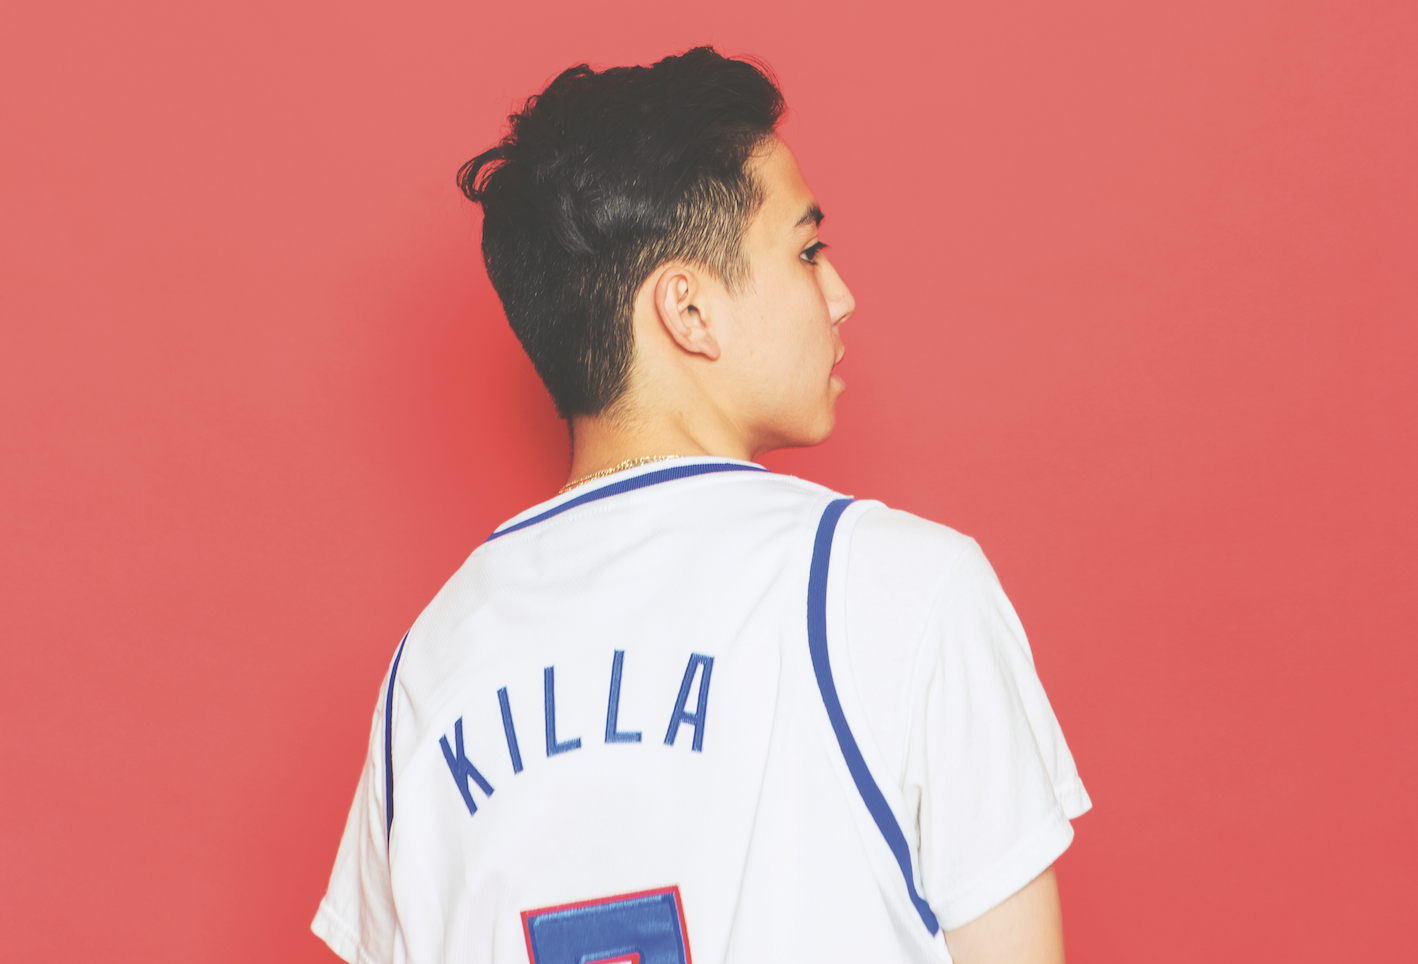 Hot Seat: we ask Manila Killa some curveball questions